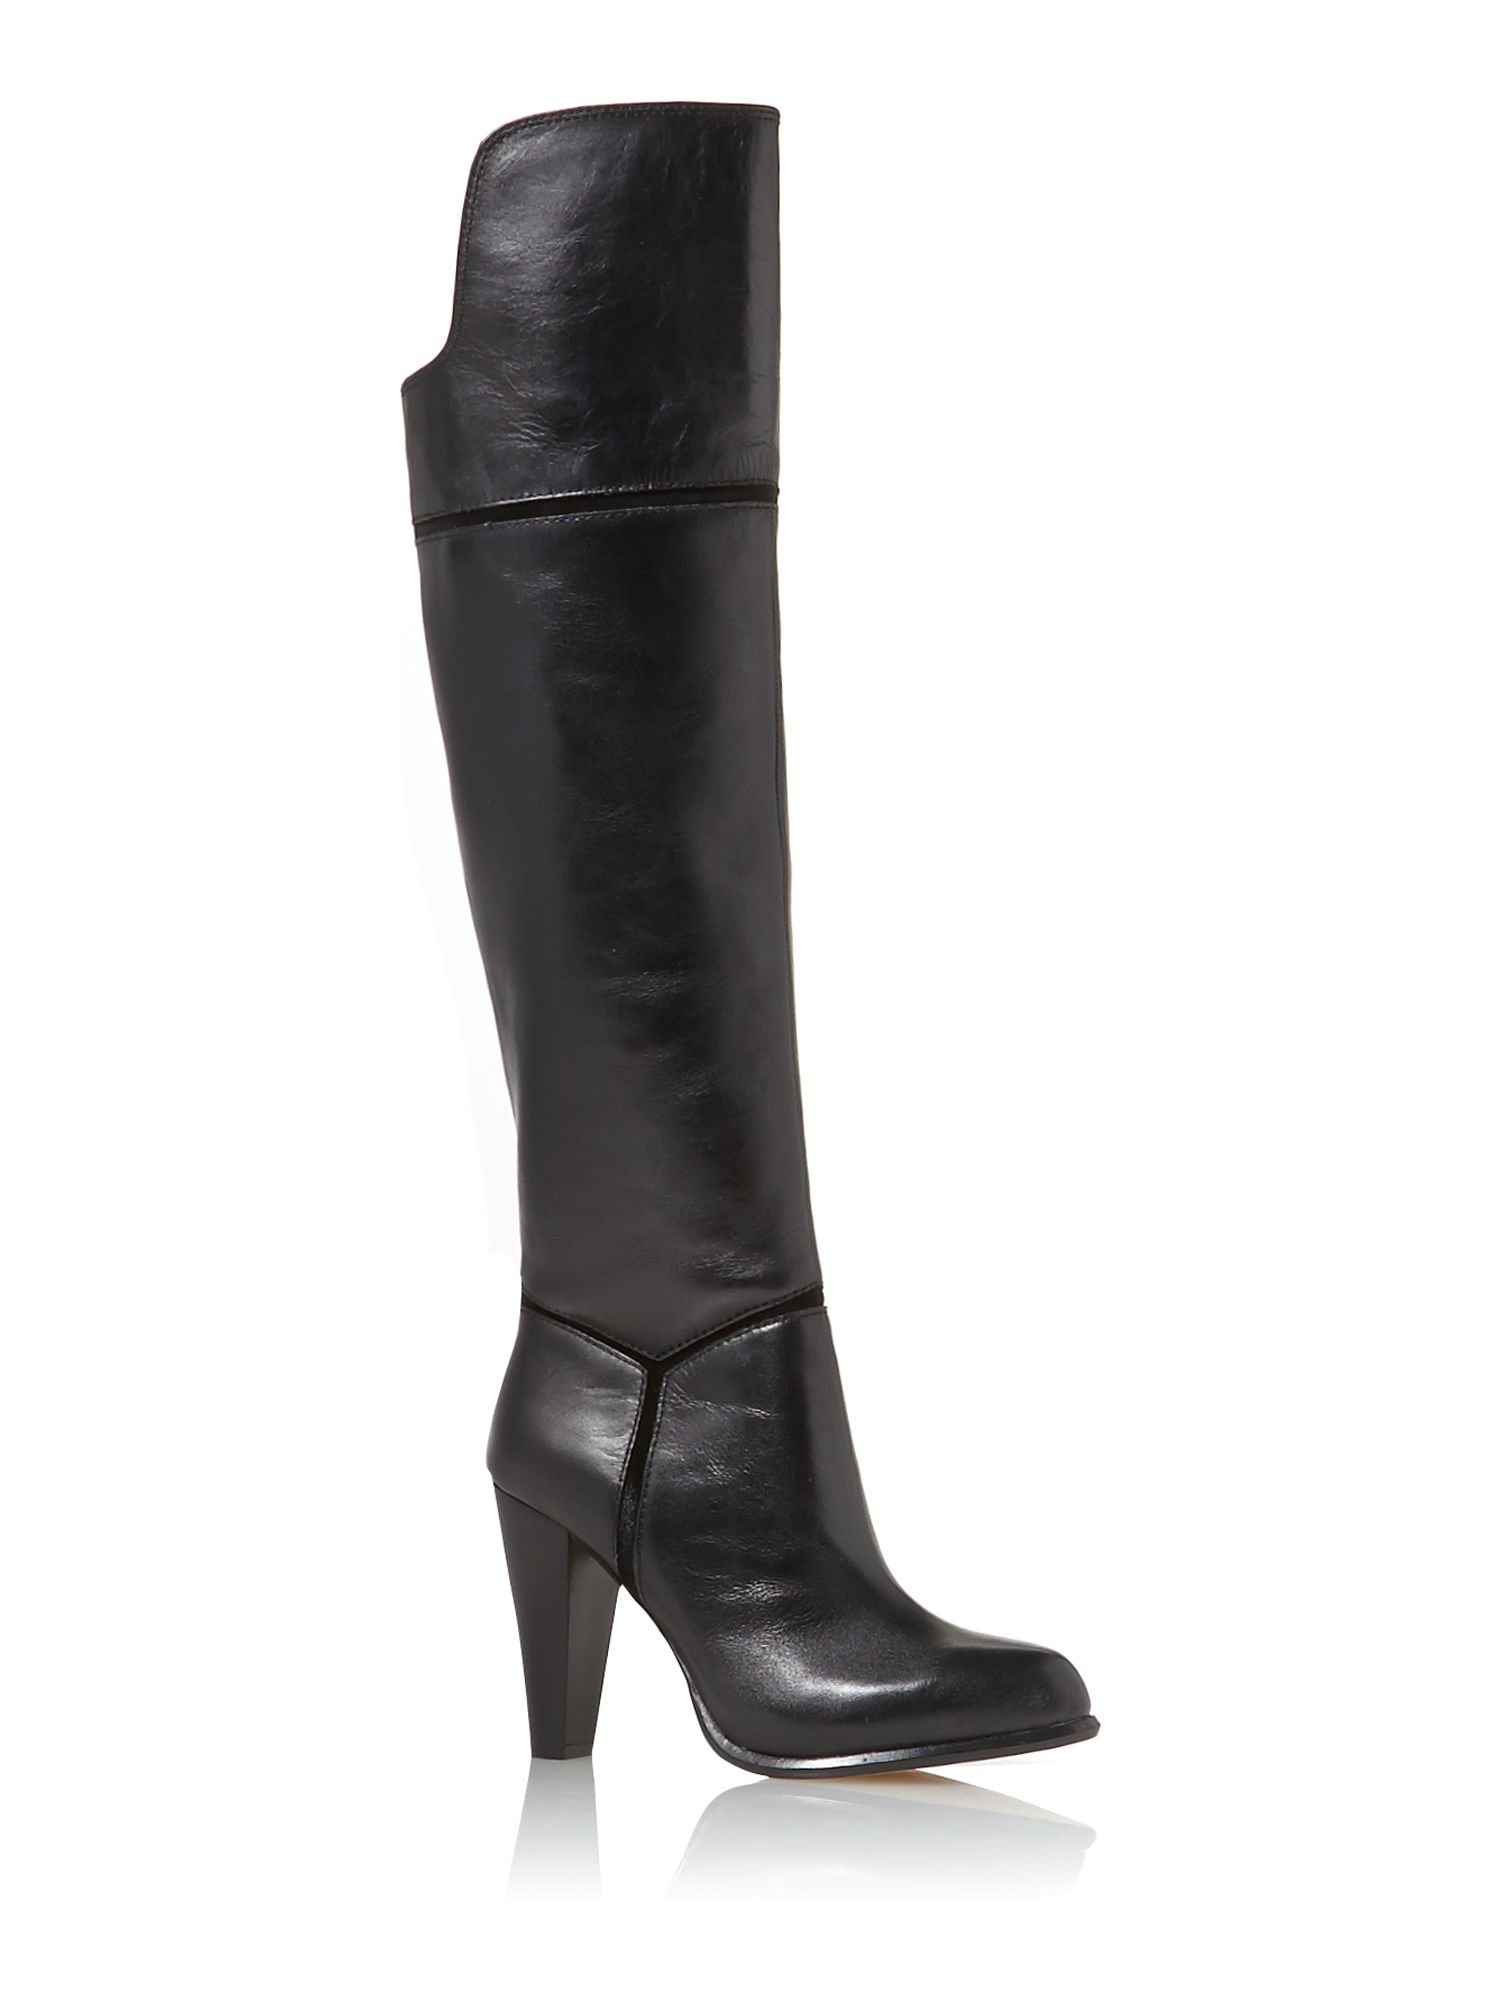 Cai heeled over the knee boots